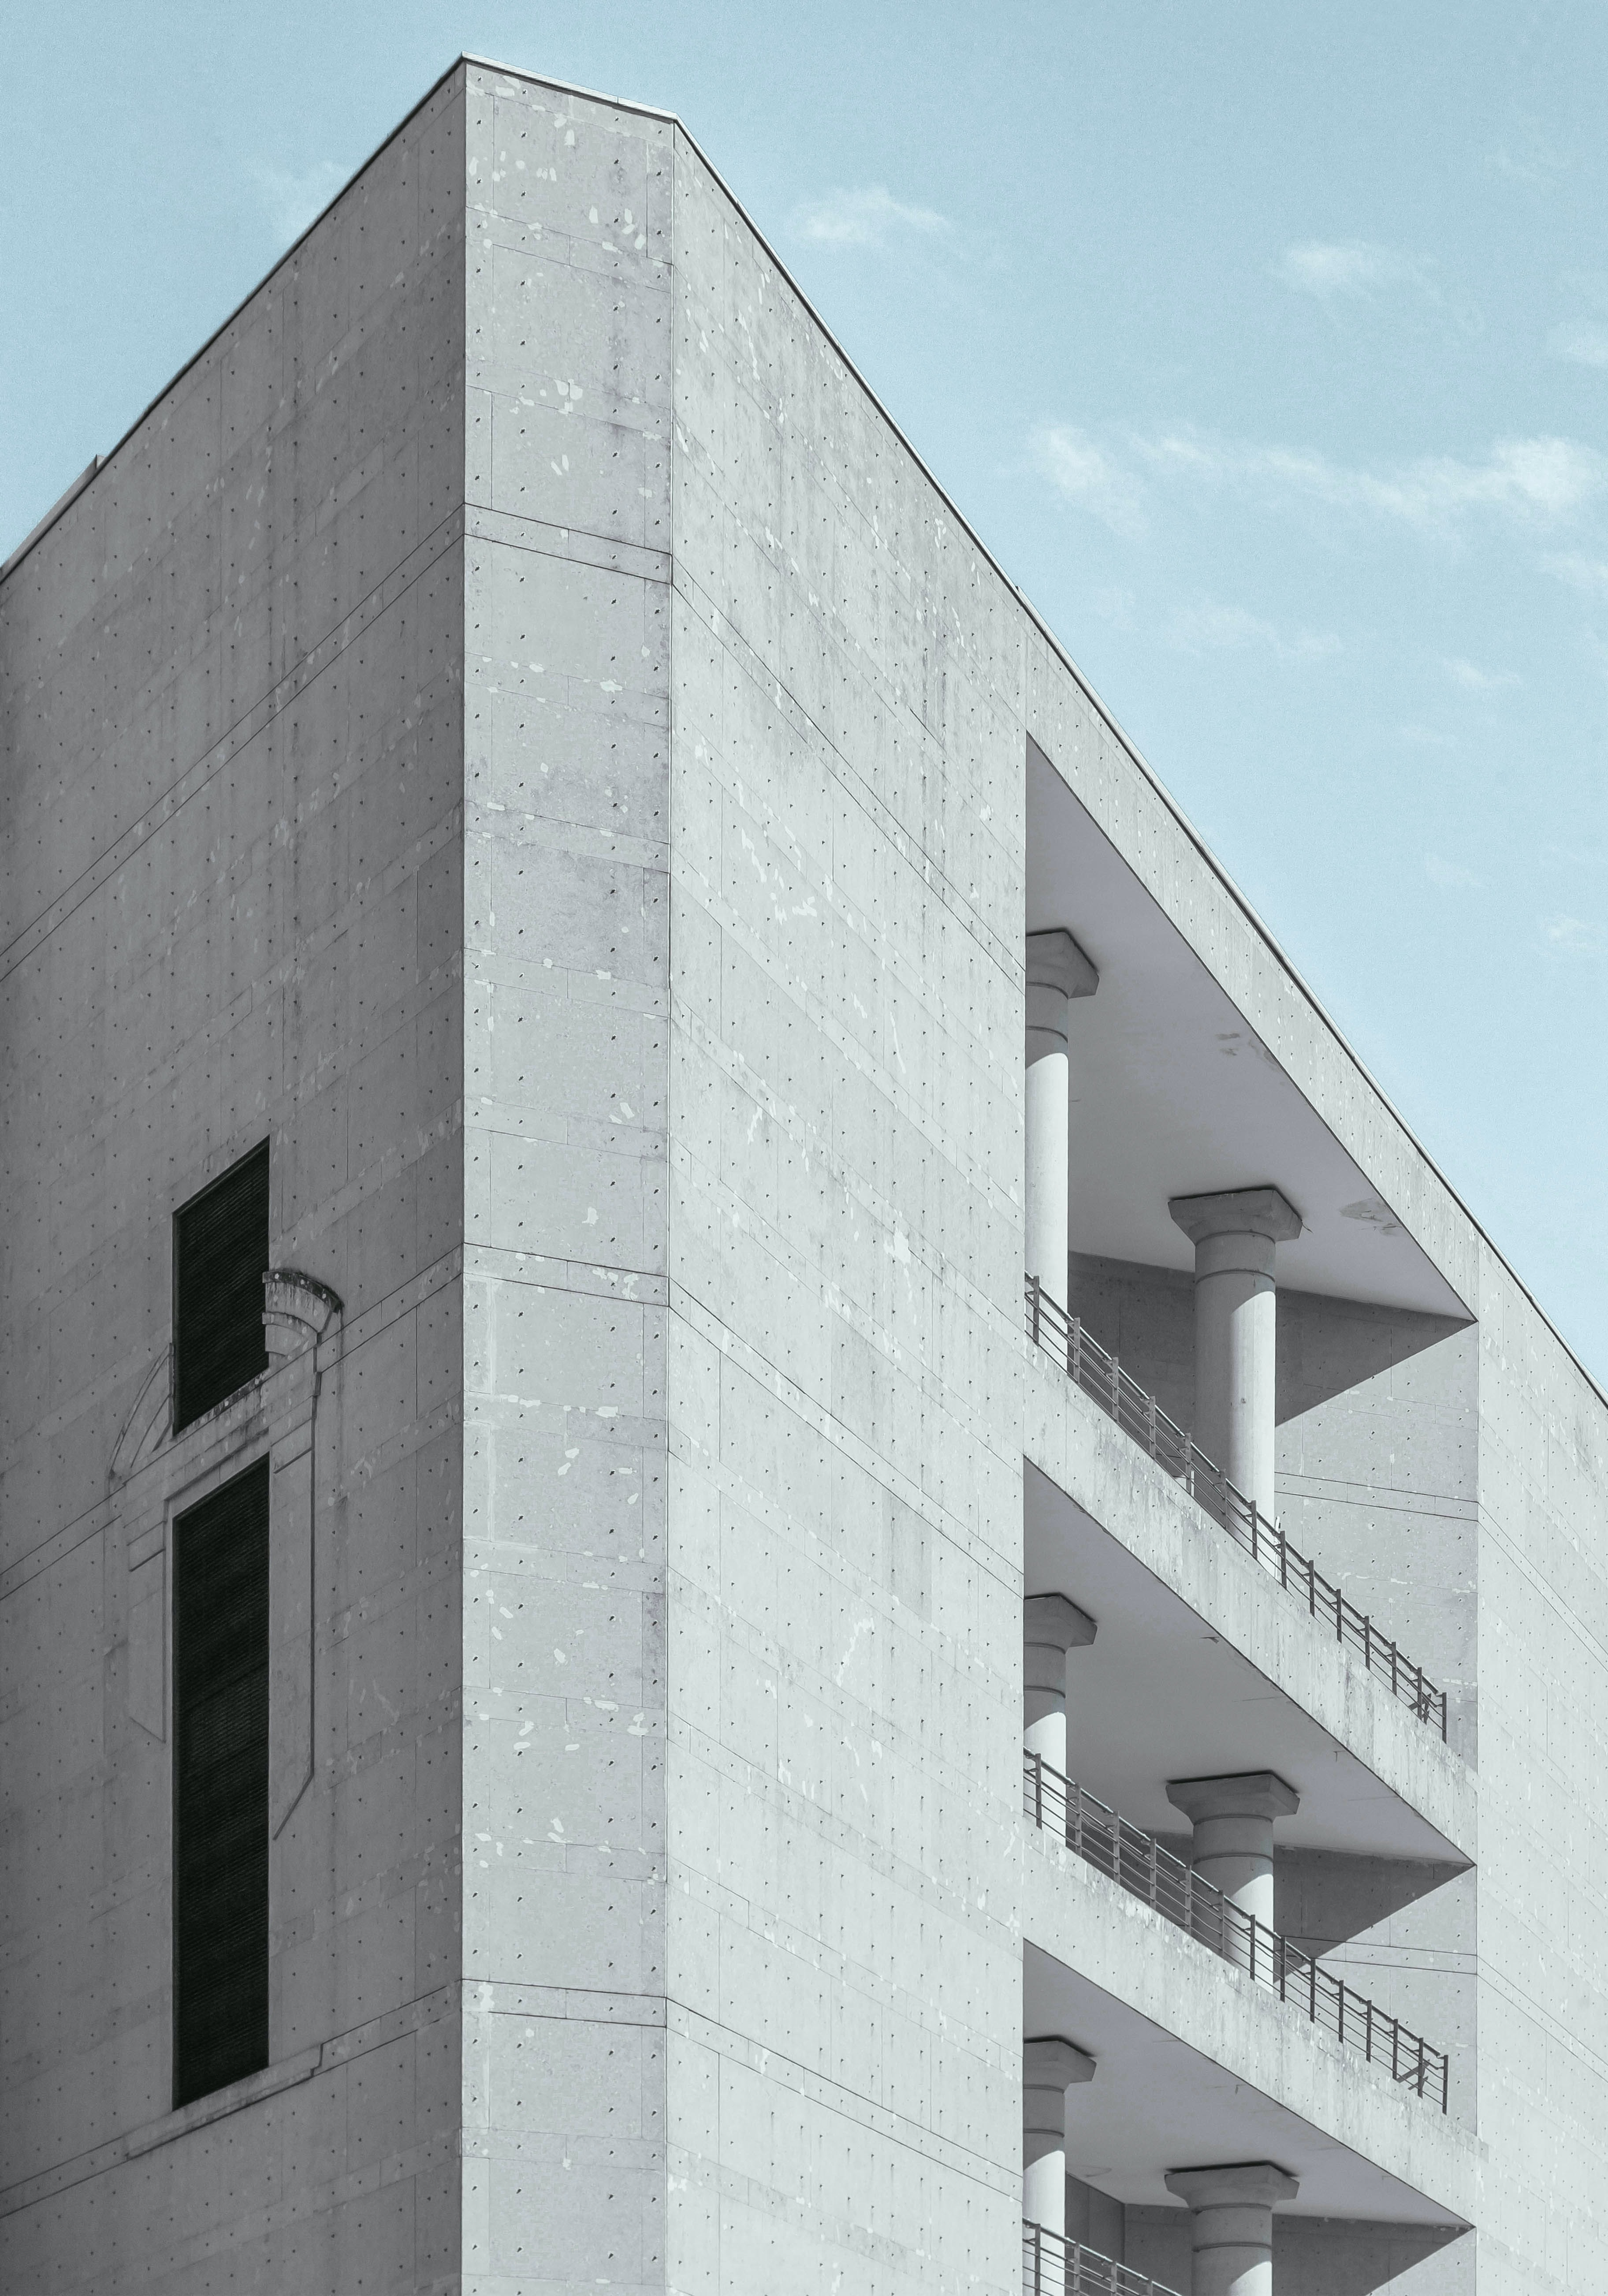 A gray concrete building with columns on its balconies